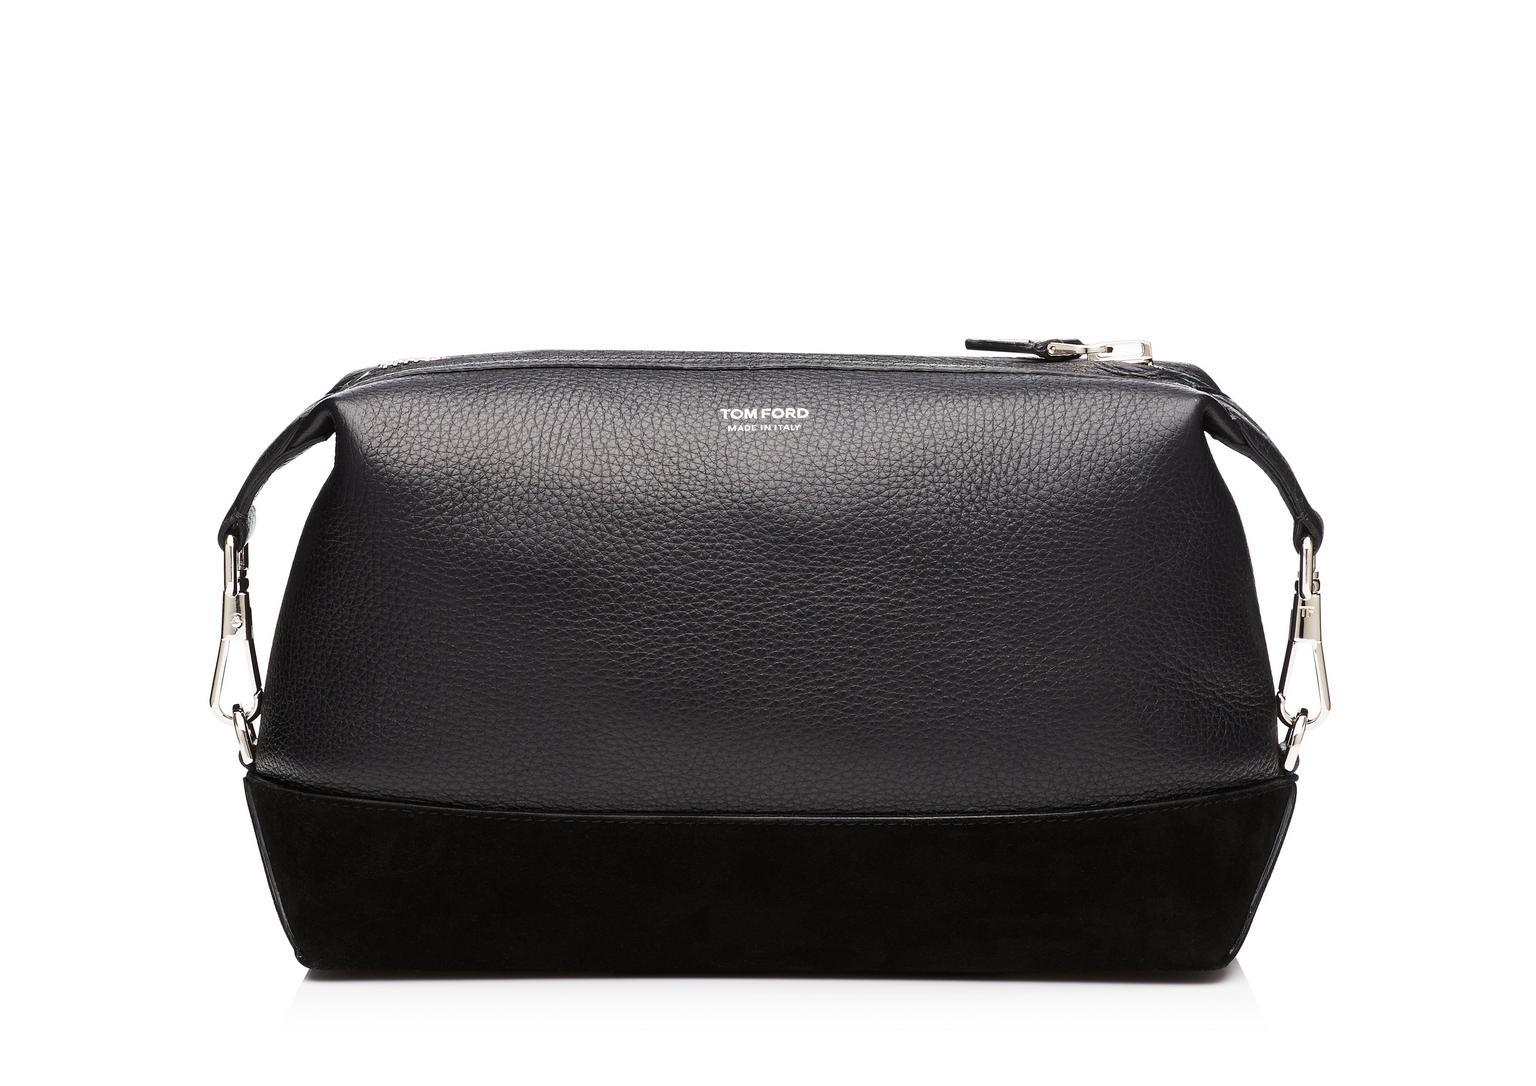 83fa532393e Tom Ford Suede-Panelled Full-Grain Leather Wash Bag In Black | ModeSens